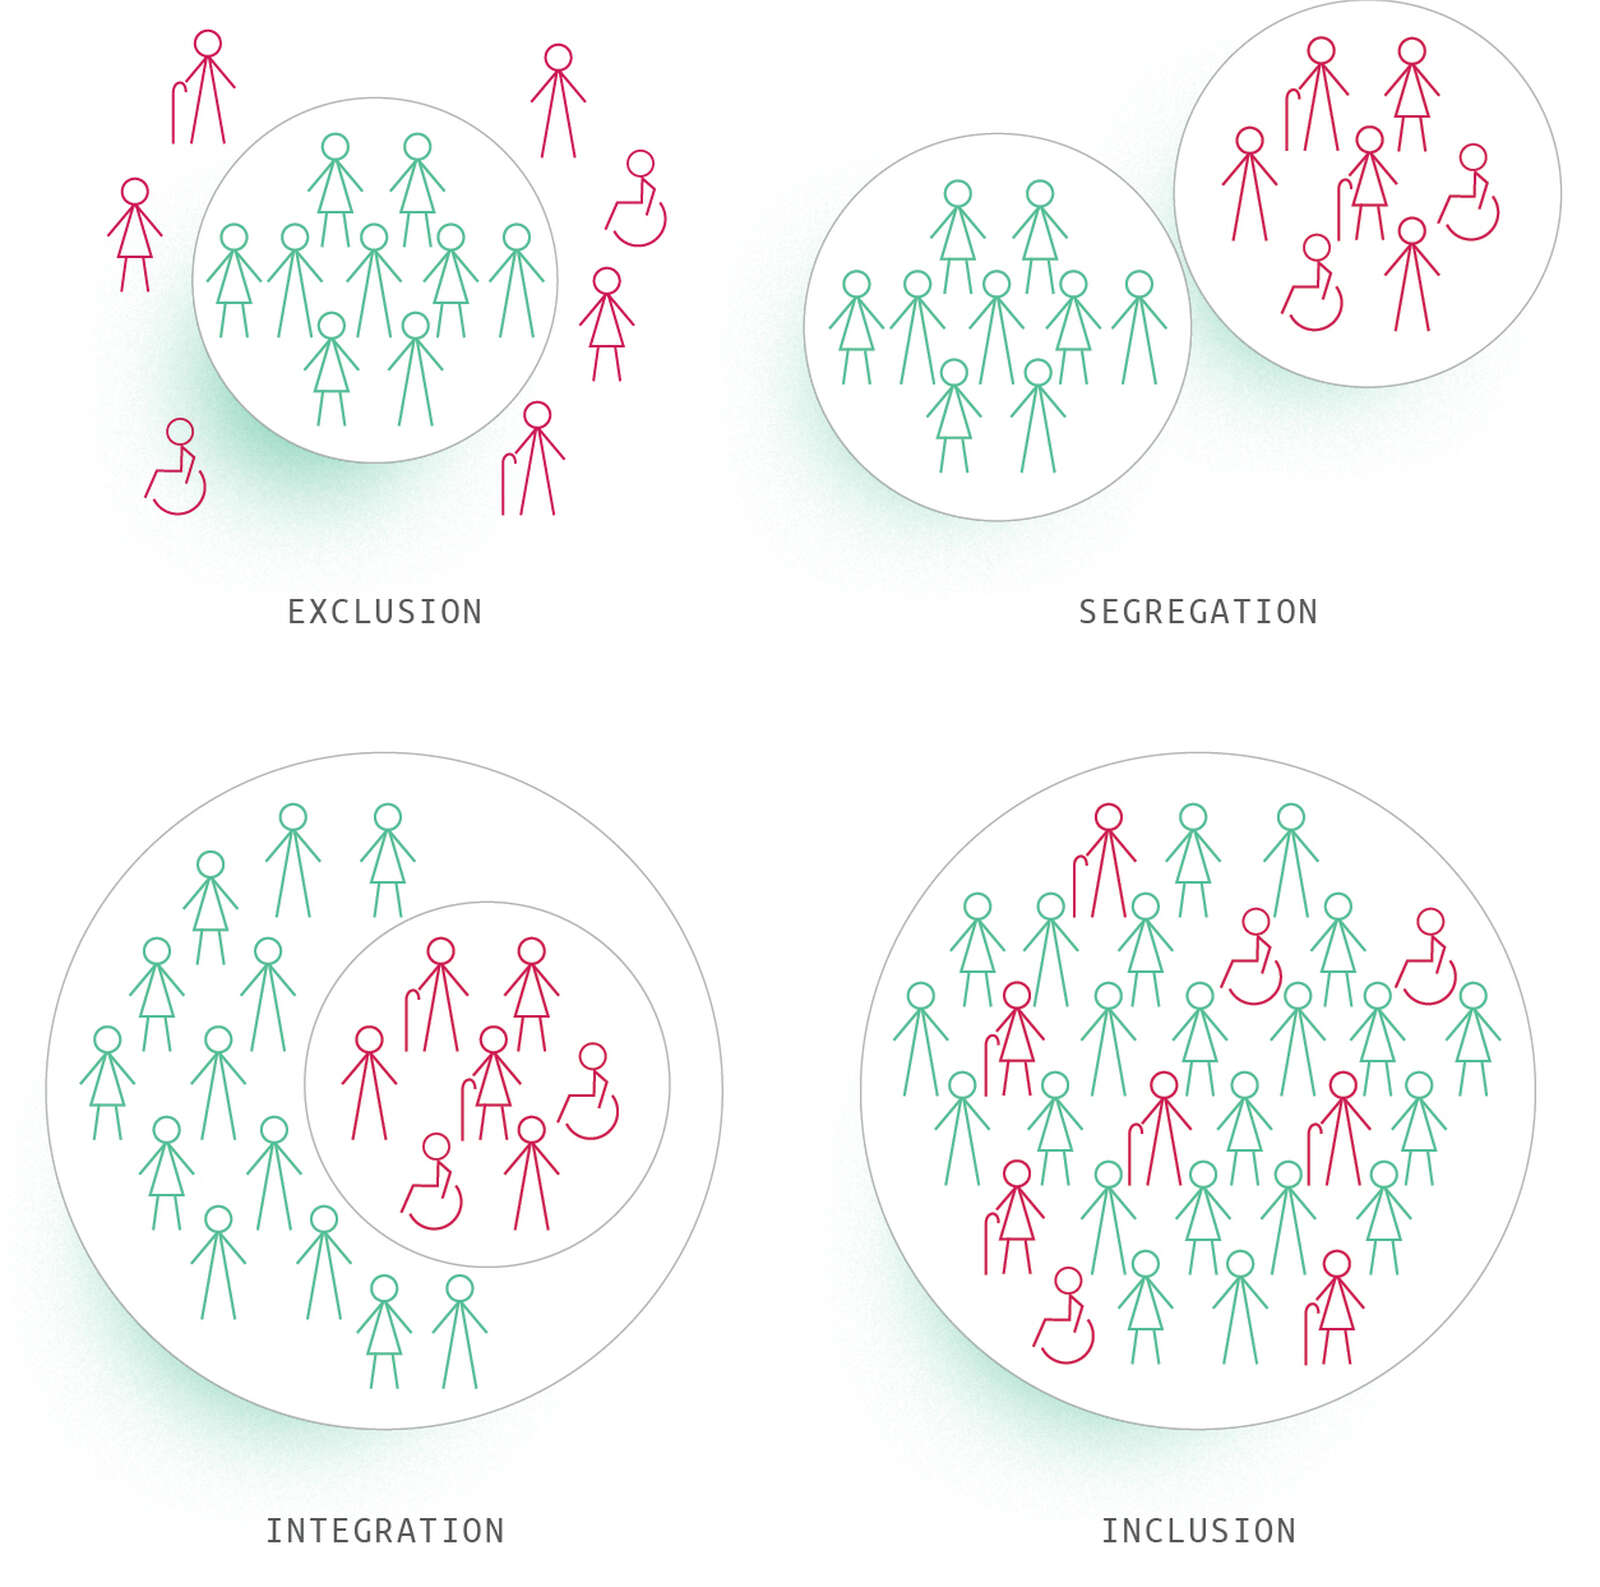 Figure 2: differences between exclusion, segregation, integration and inclusion (Addapted from: http://www.sanmarcoargentano-polis.it/ARCHIVIO/02.COMMENTI/2017/L'inclusione.htm)